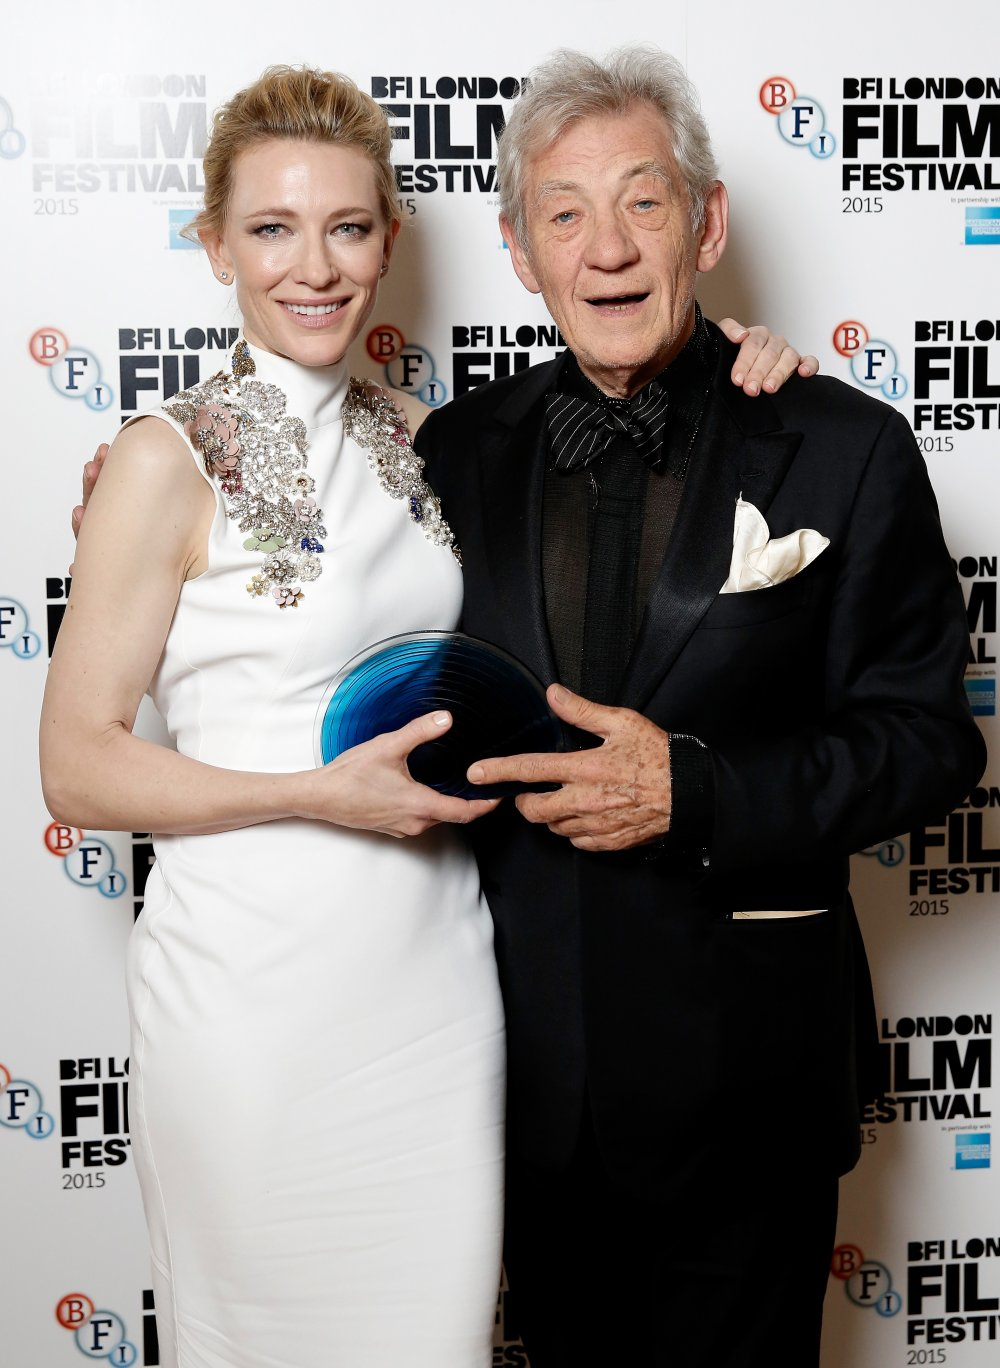 Cate Blanchett and Sir Ian McKellen at the BFI London Film Festival Awards ceremony